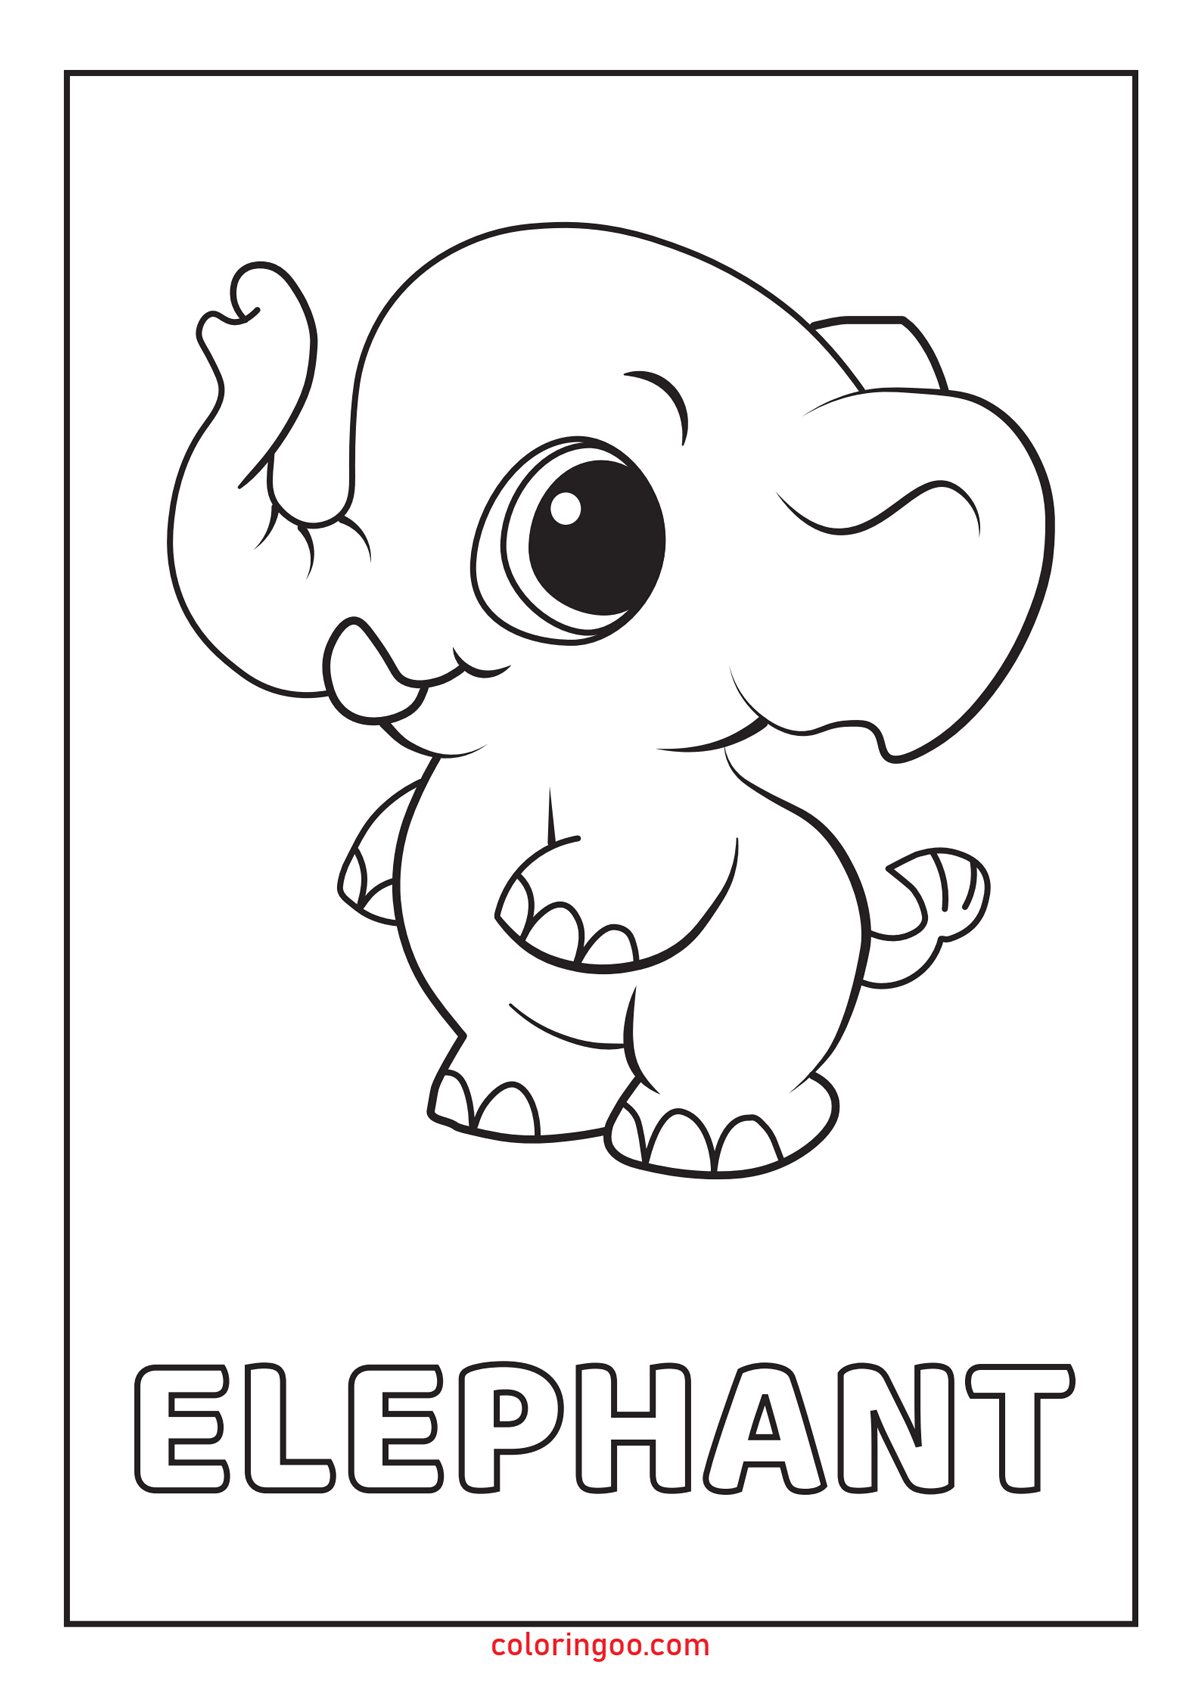 Elephant Printable Coloring Pages for Kids